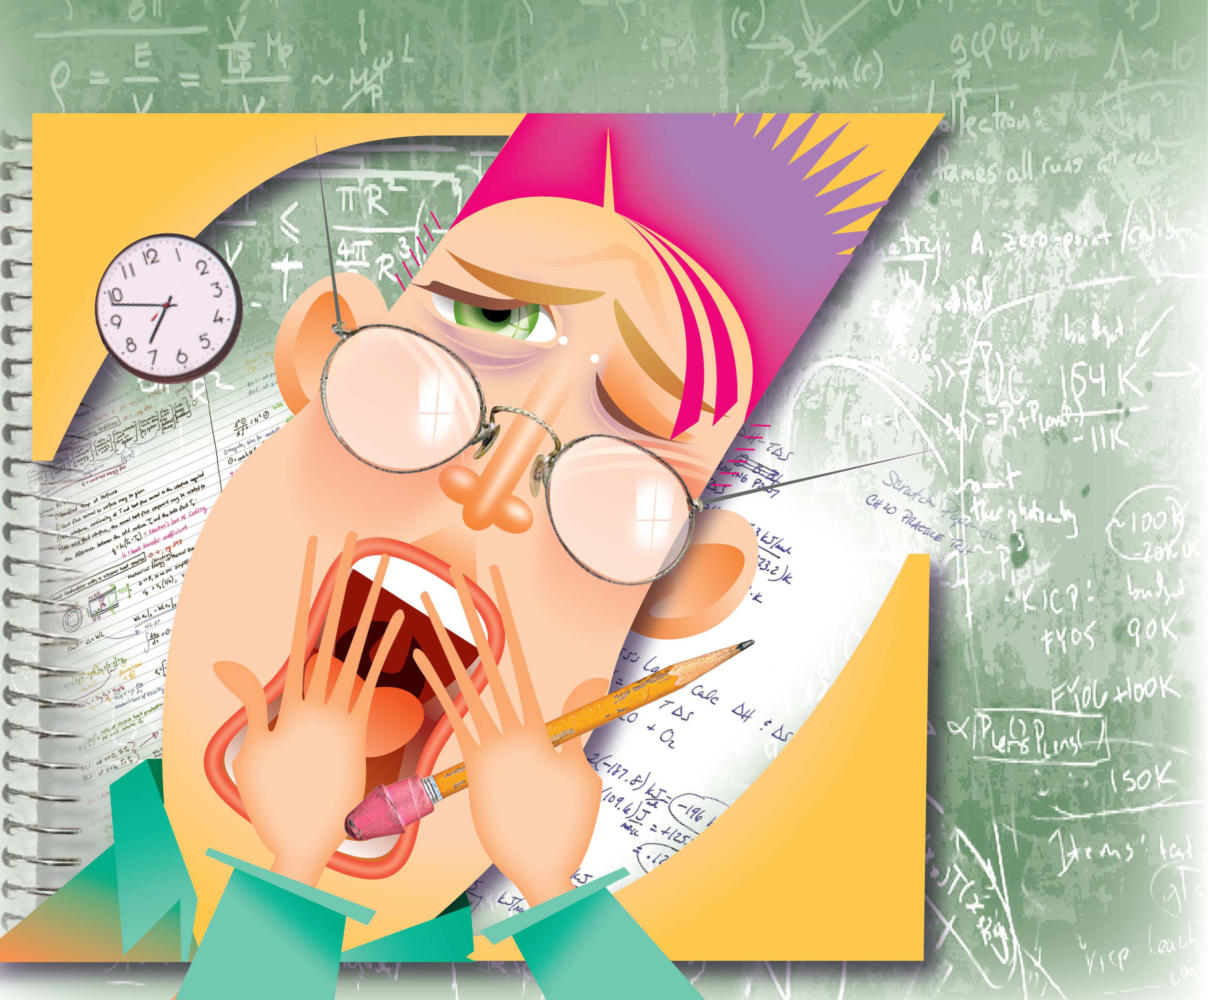 Laurie McAdam color illustration of yawning student with notebooks and chalkboard equations, tired from all night study session. The Modesto Bee 2008